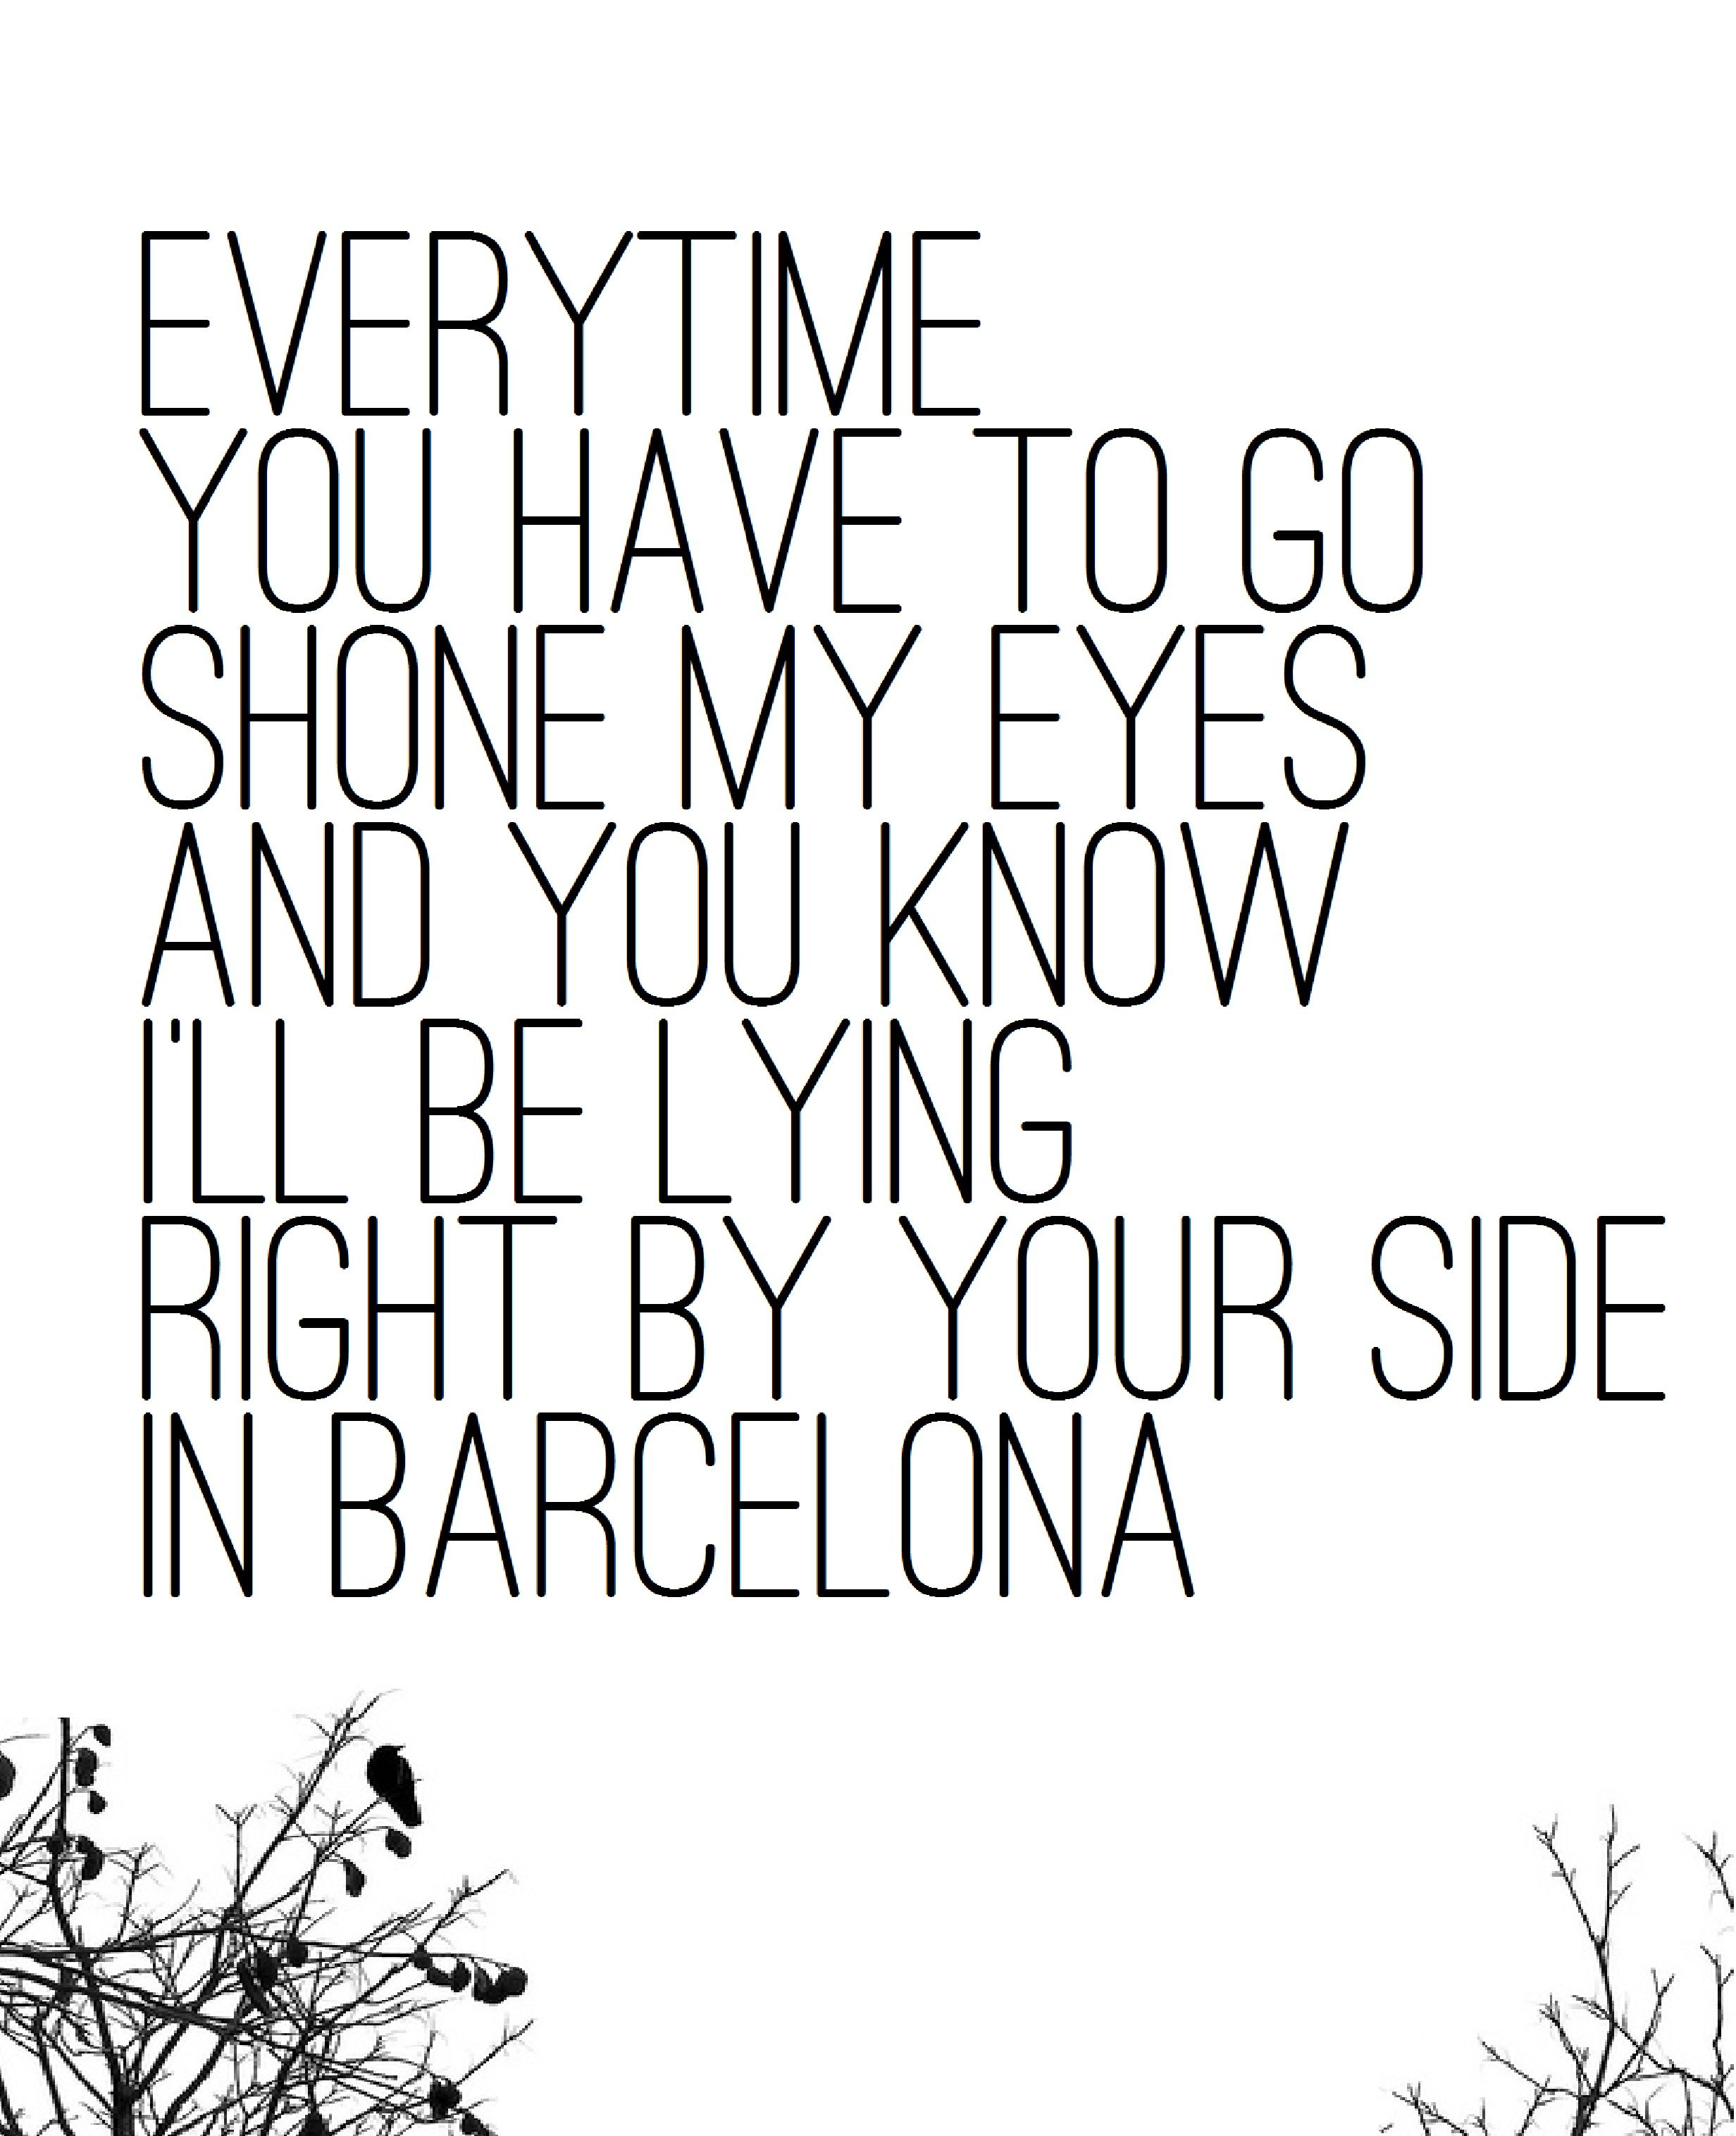 Barcelona by George Ezra My absolute favorite song that has ever